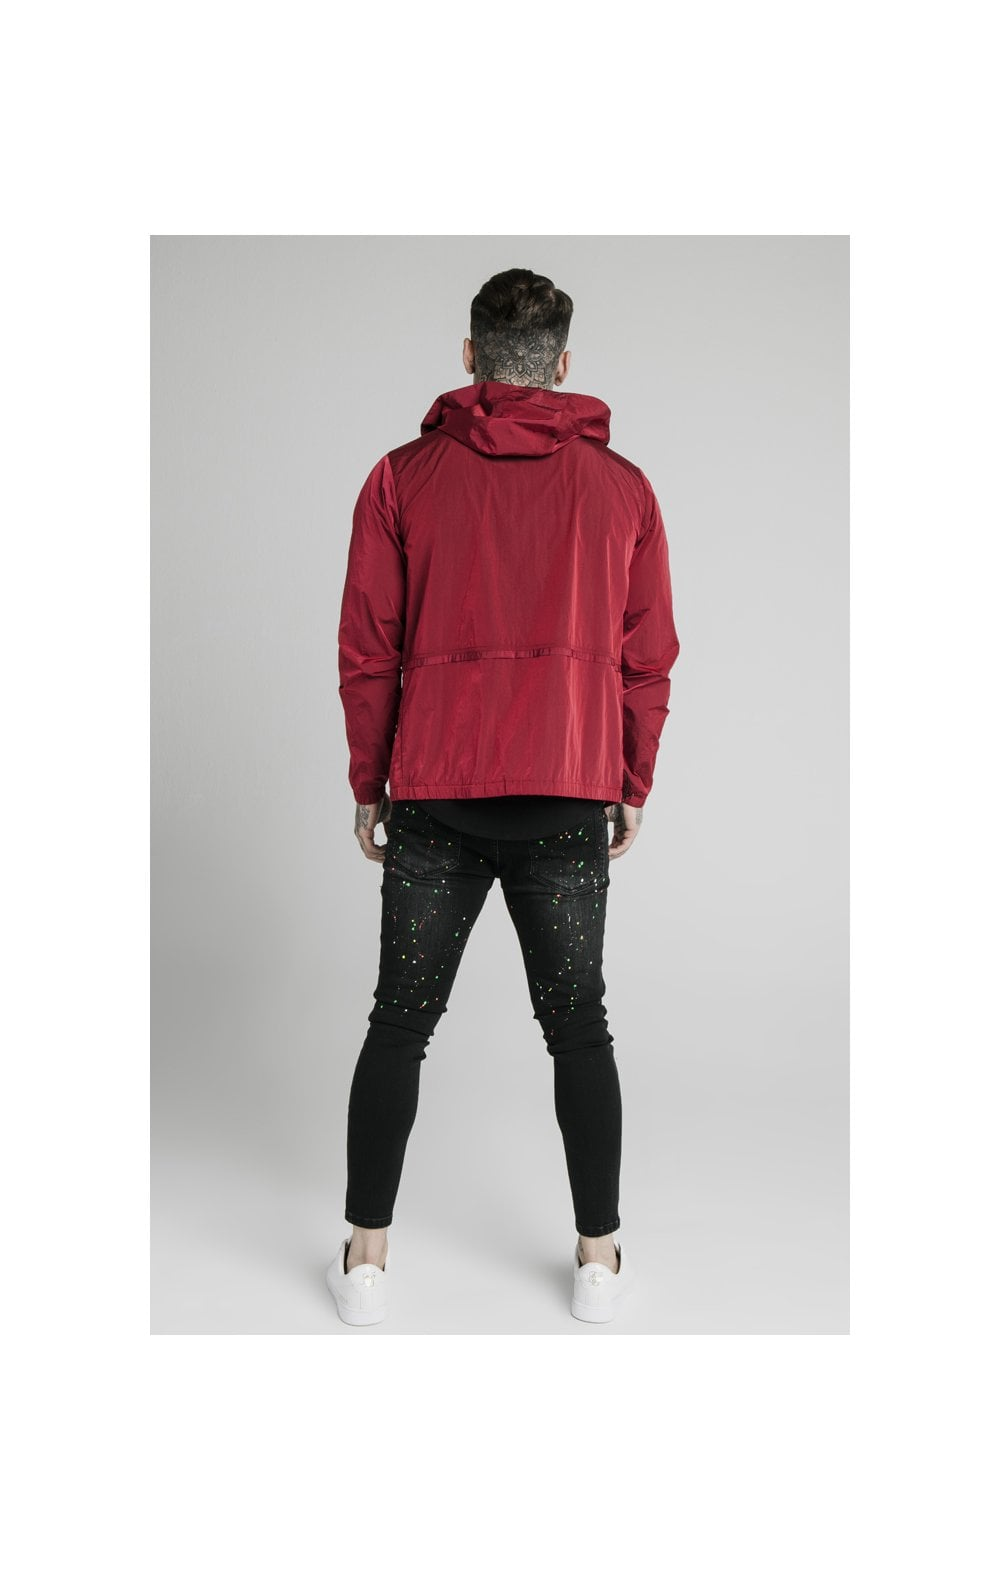 SikSilk Zip Through Windbreaker Jacket - Red (5)